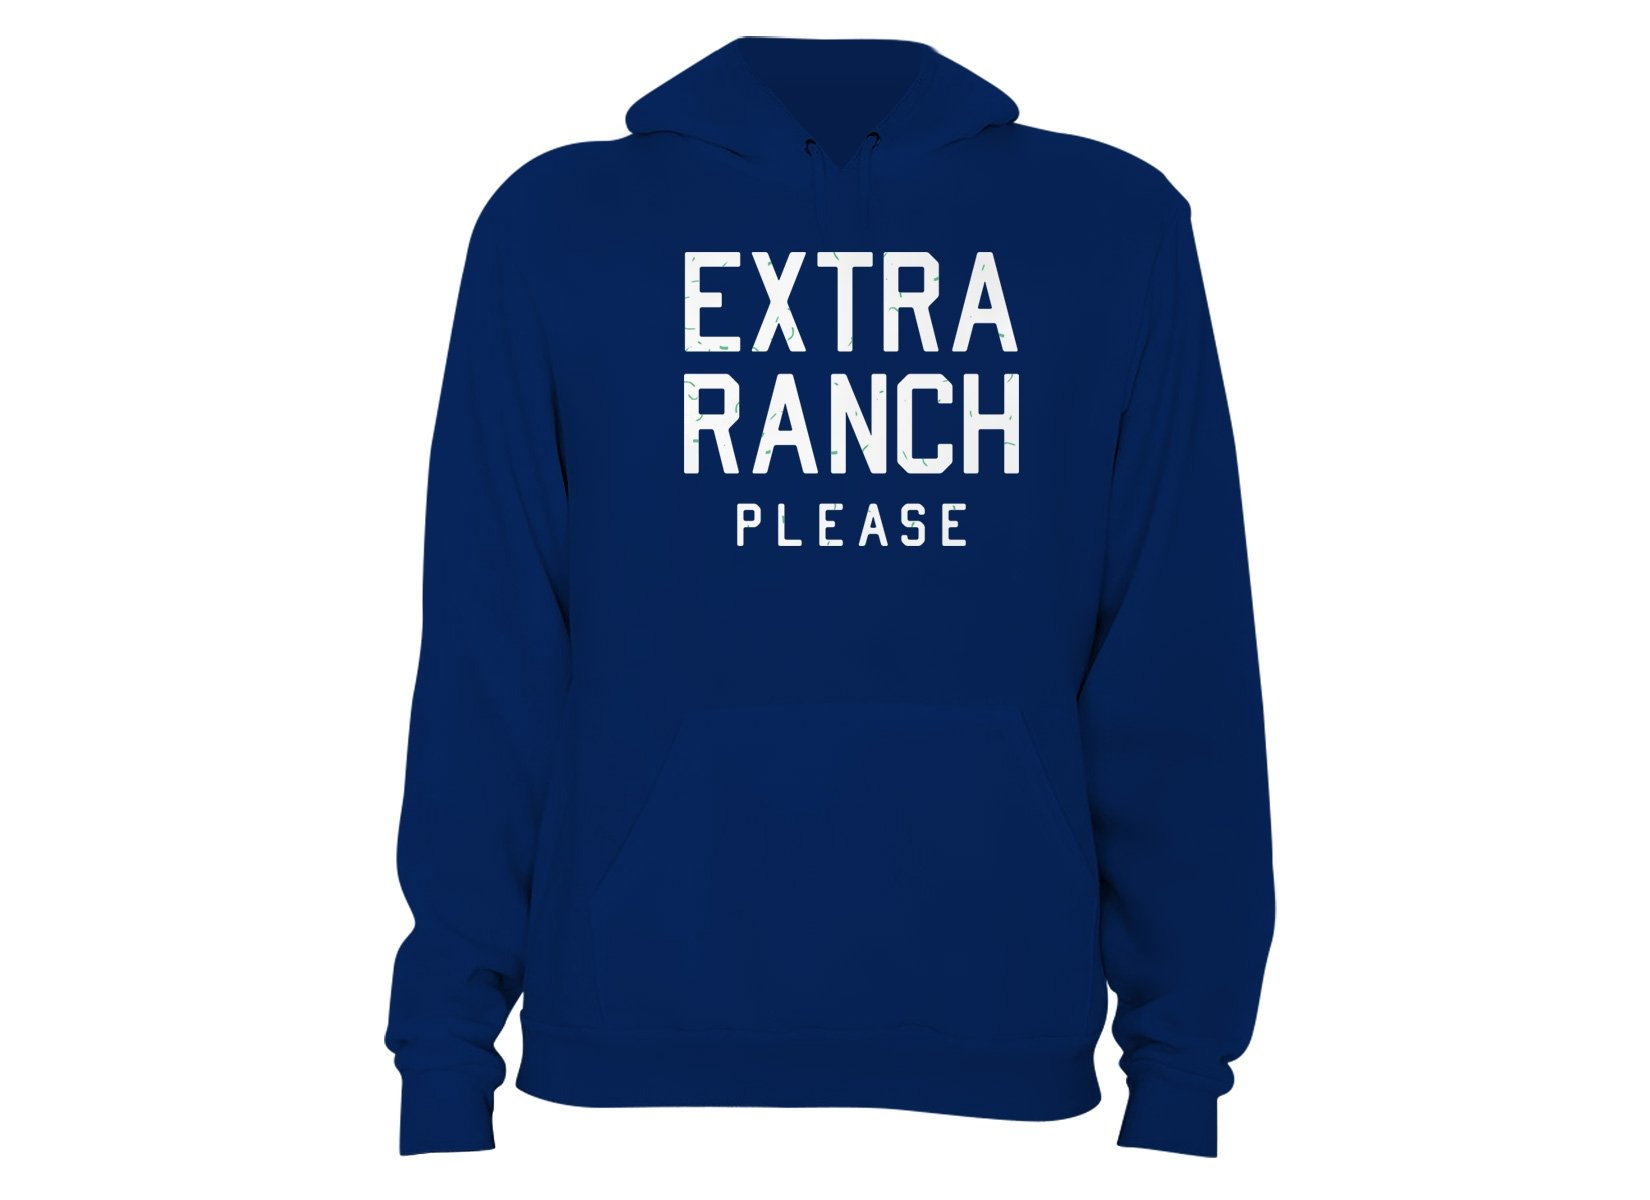 Extra Ranch Please on Hoodie